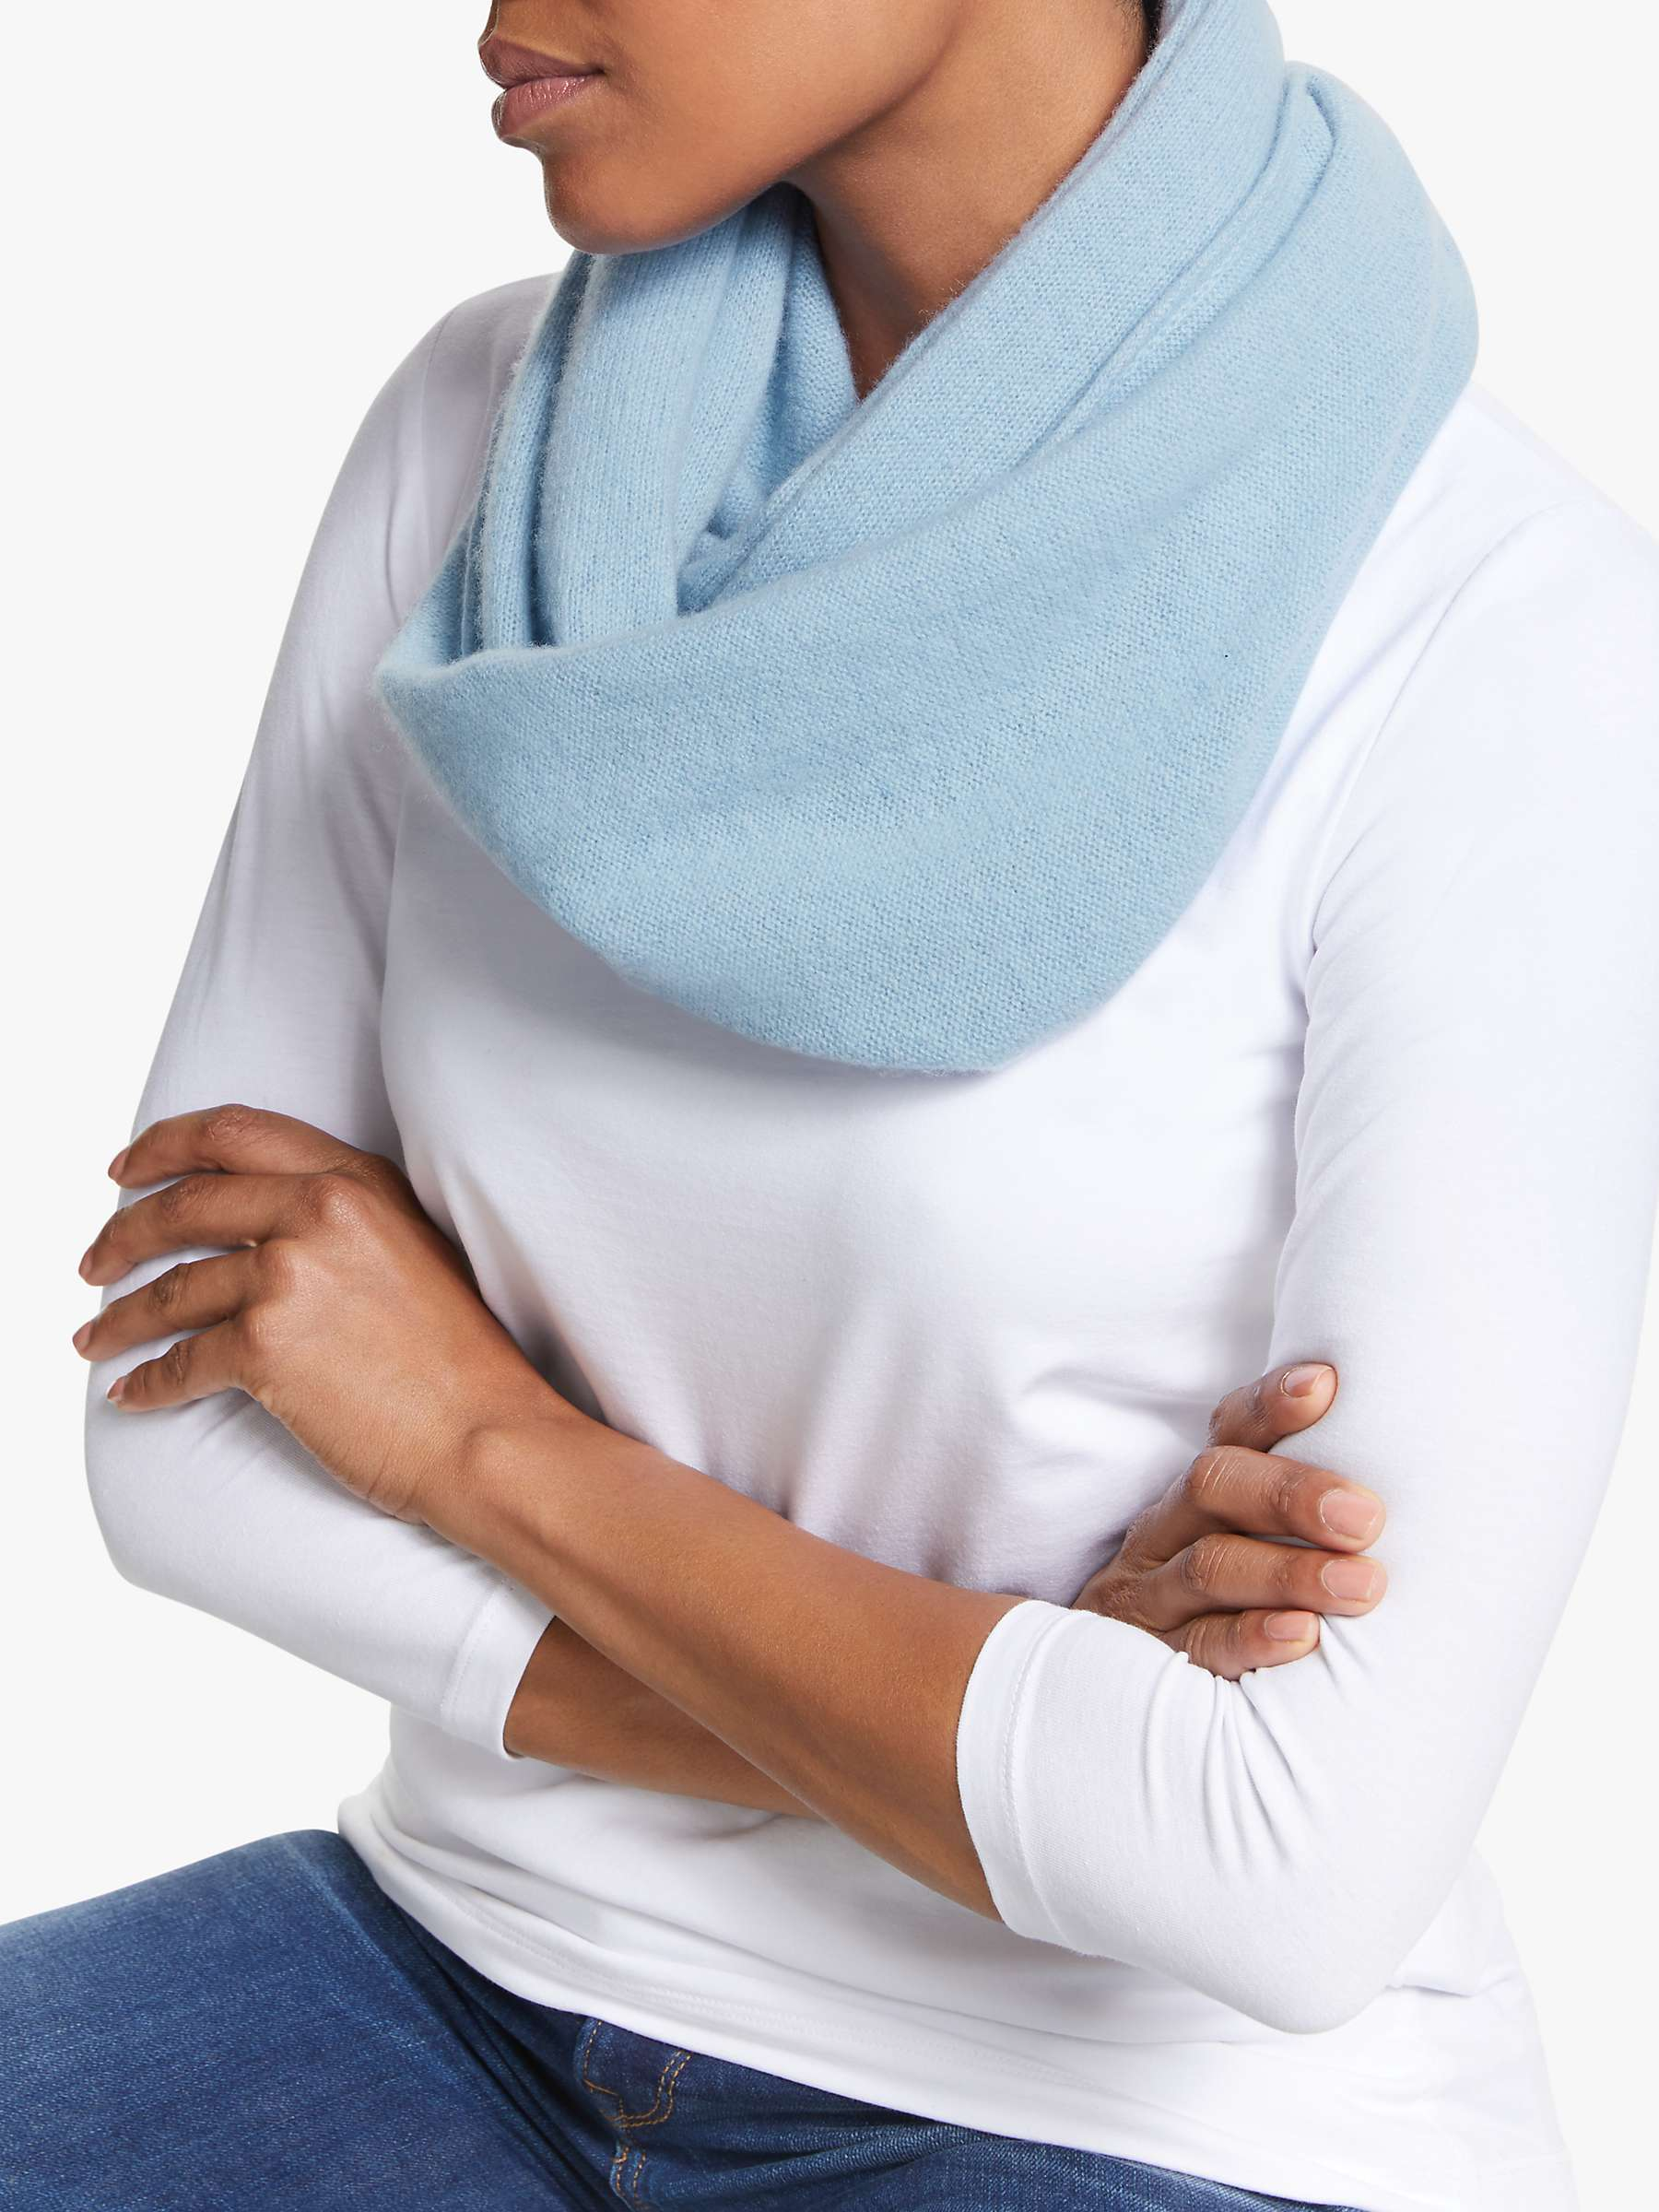 Winter Warm Brushed Knit Cashmere Neck Warmer Circle Go Out Wrap Cowl Loop Snood Shawl Outdoor Ski Climbing Scarf For Men Women